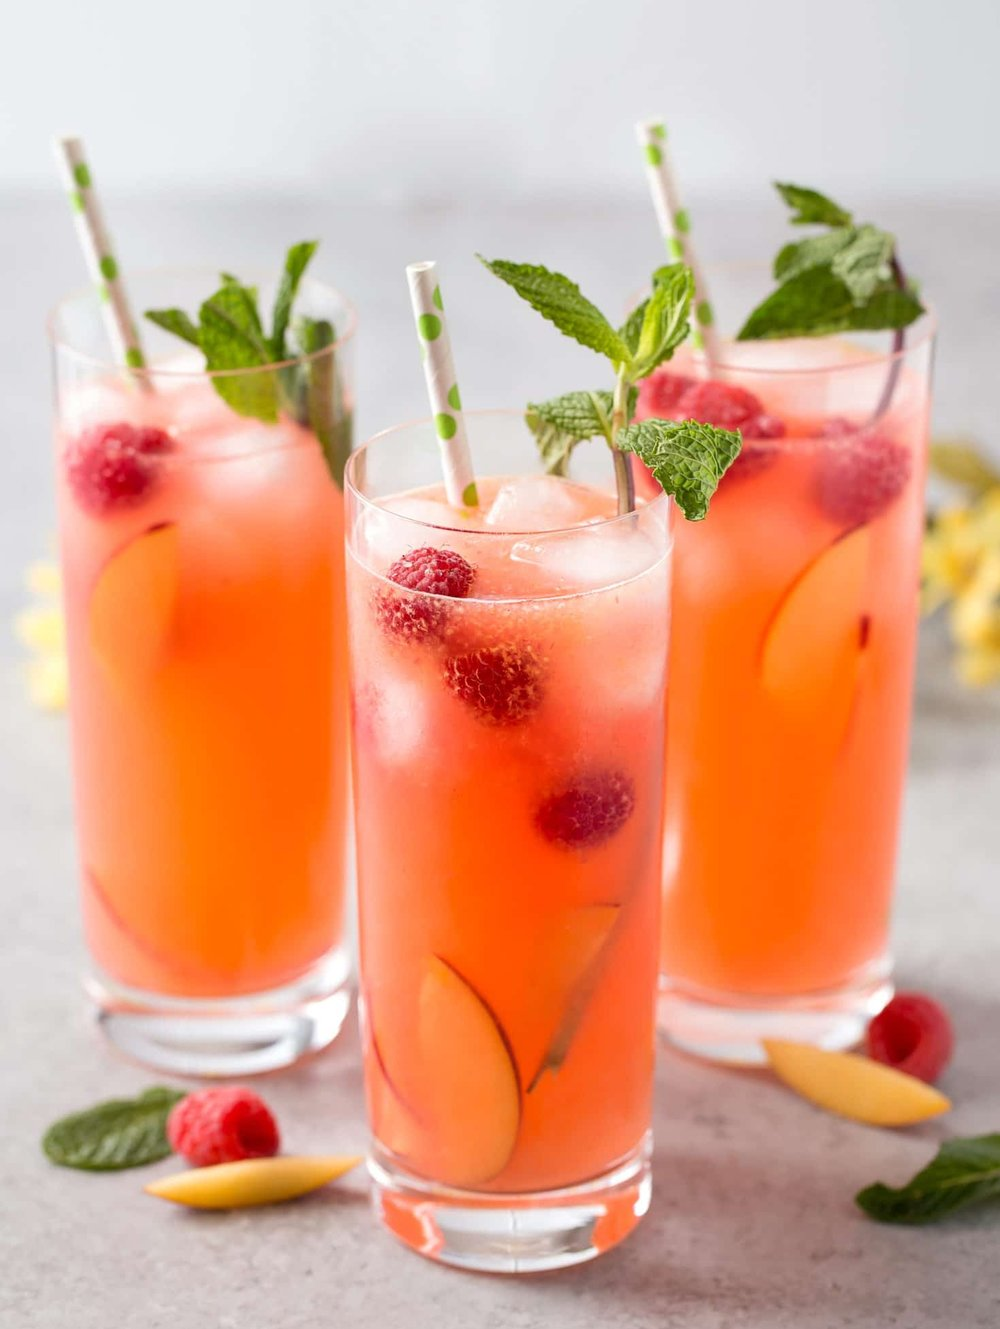 Homemade-Raspberry-Peach-Lemonade-6.jpg